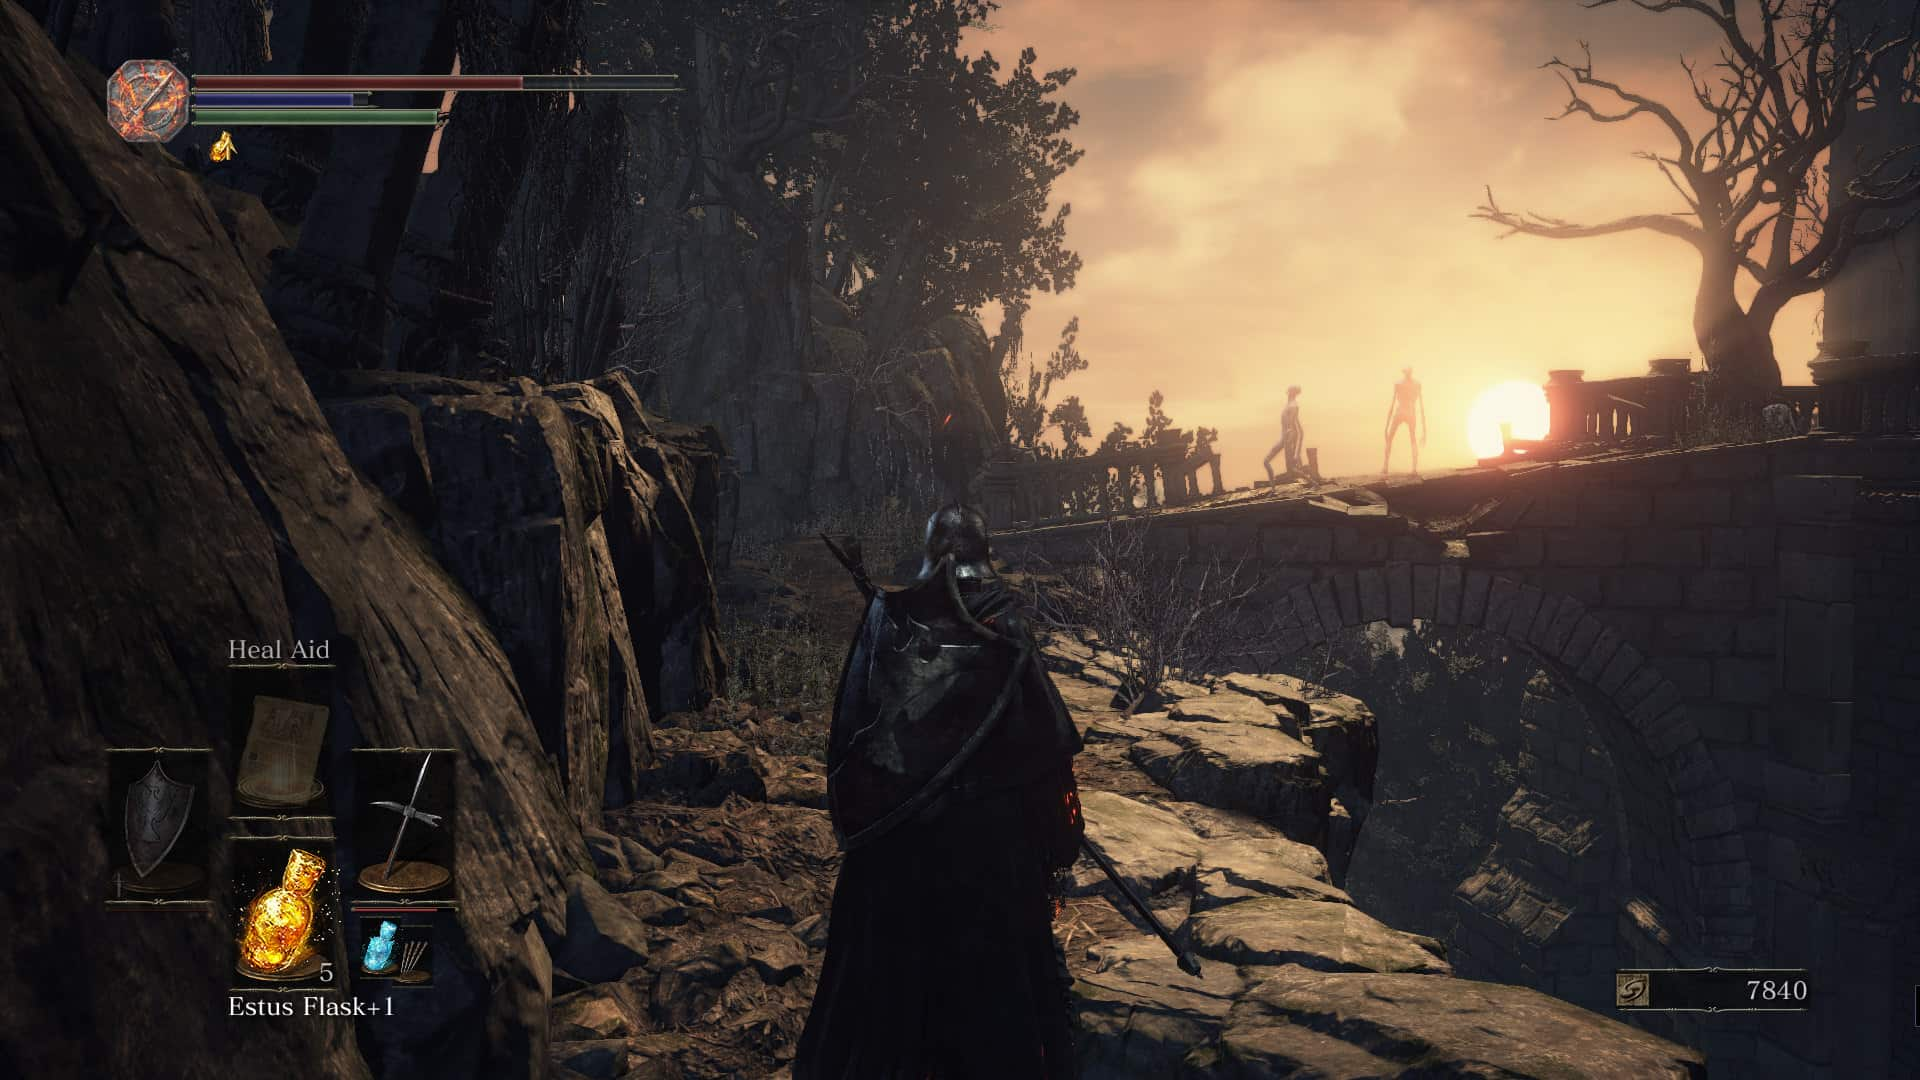 There's not shortage of grand sights in FromSoftware's latest.